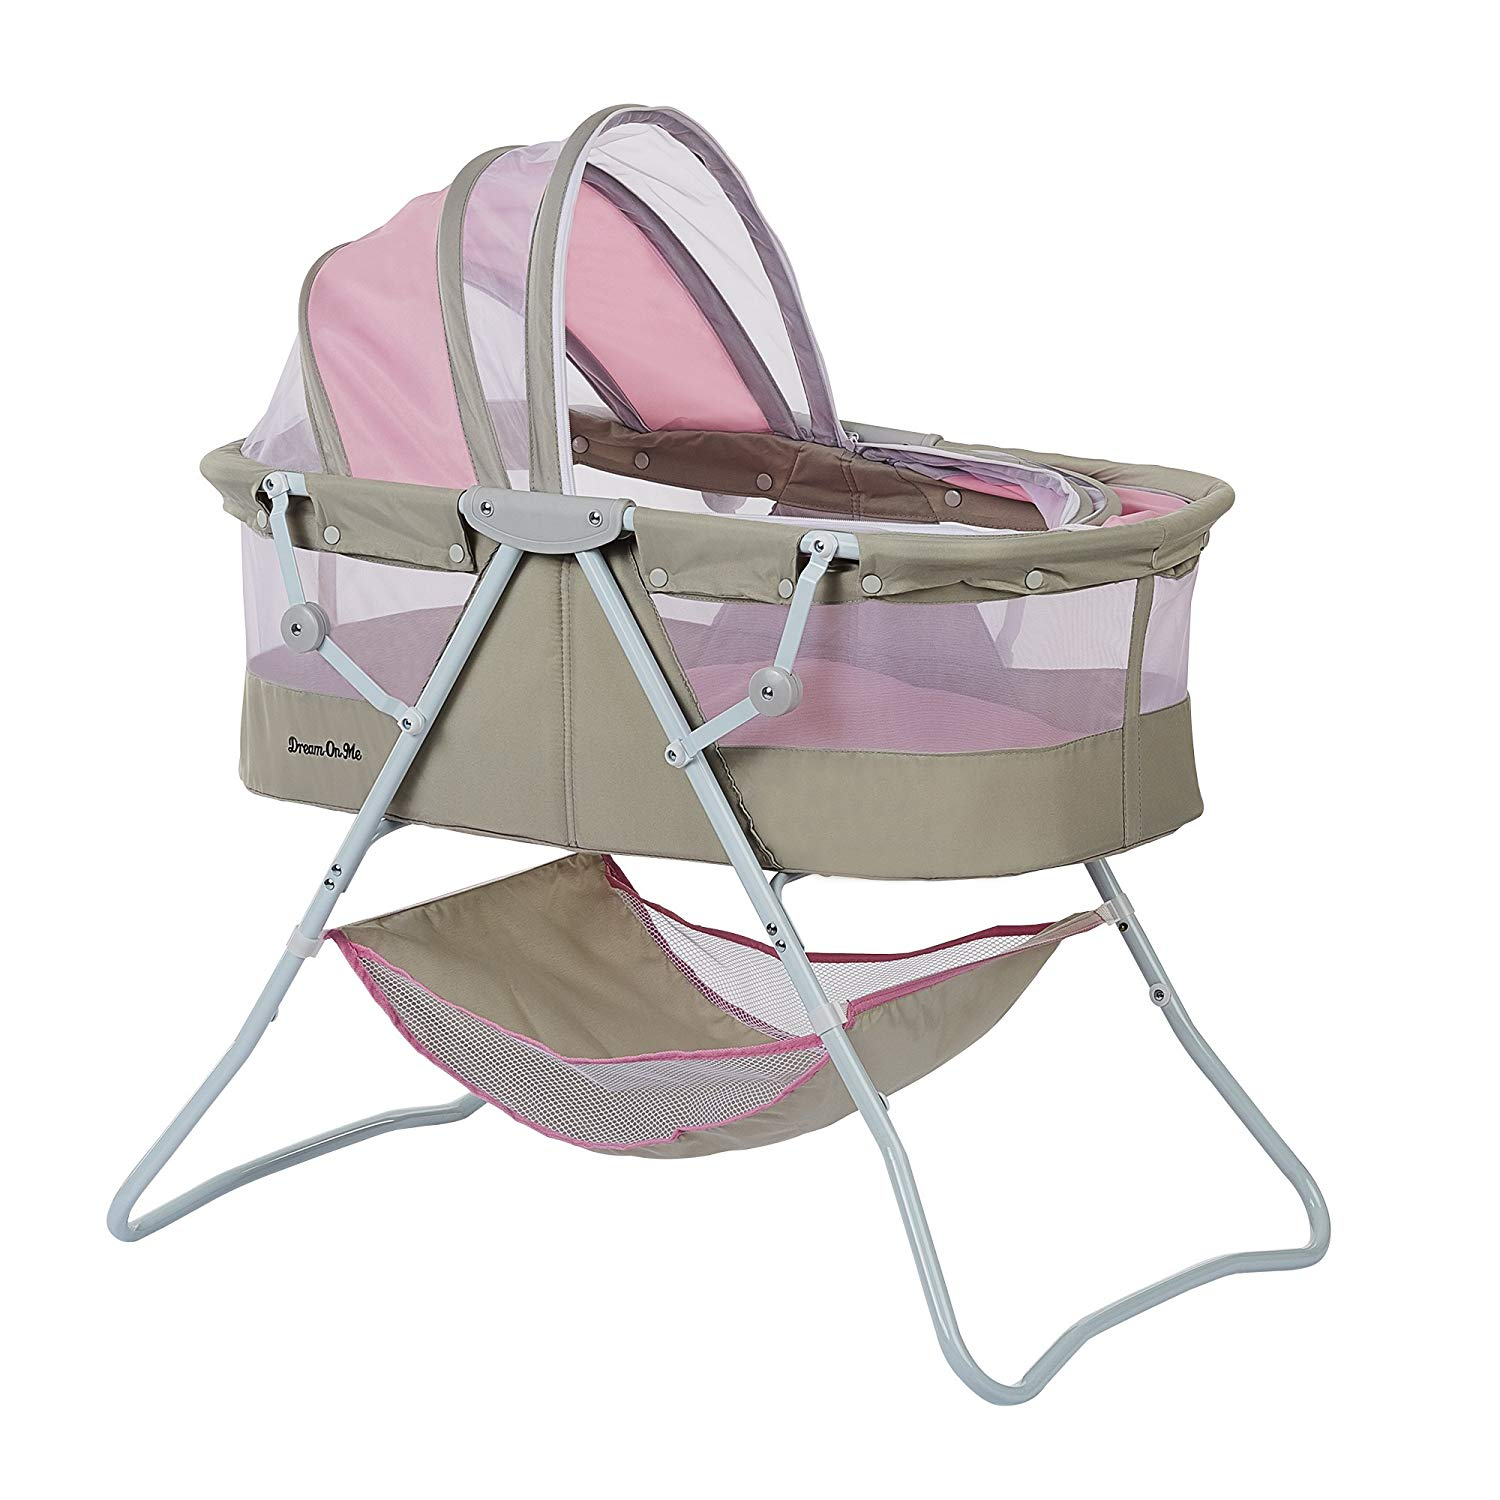 The Dream On Me Karley Bassinet features a double canopy.